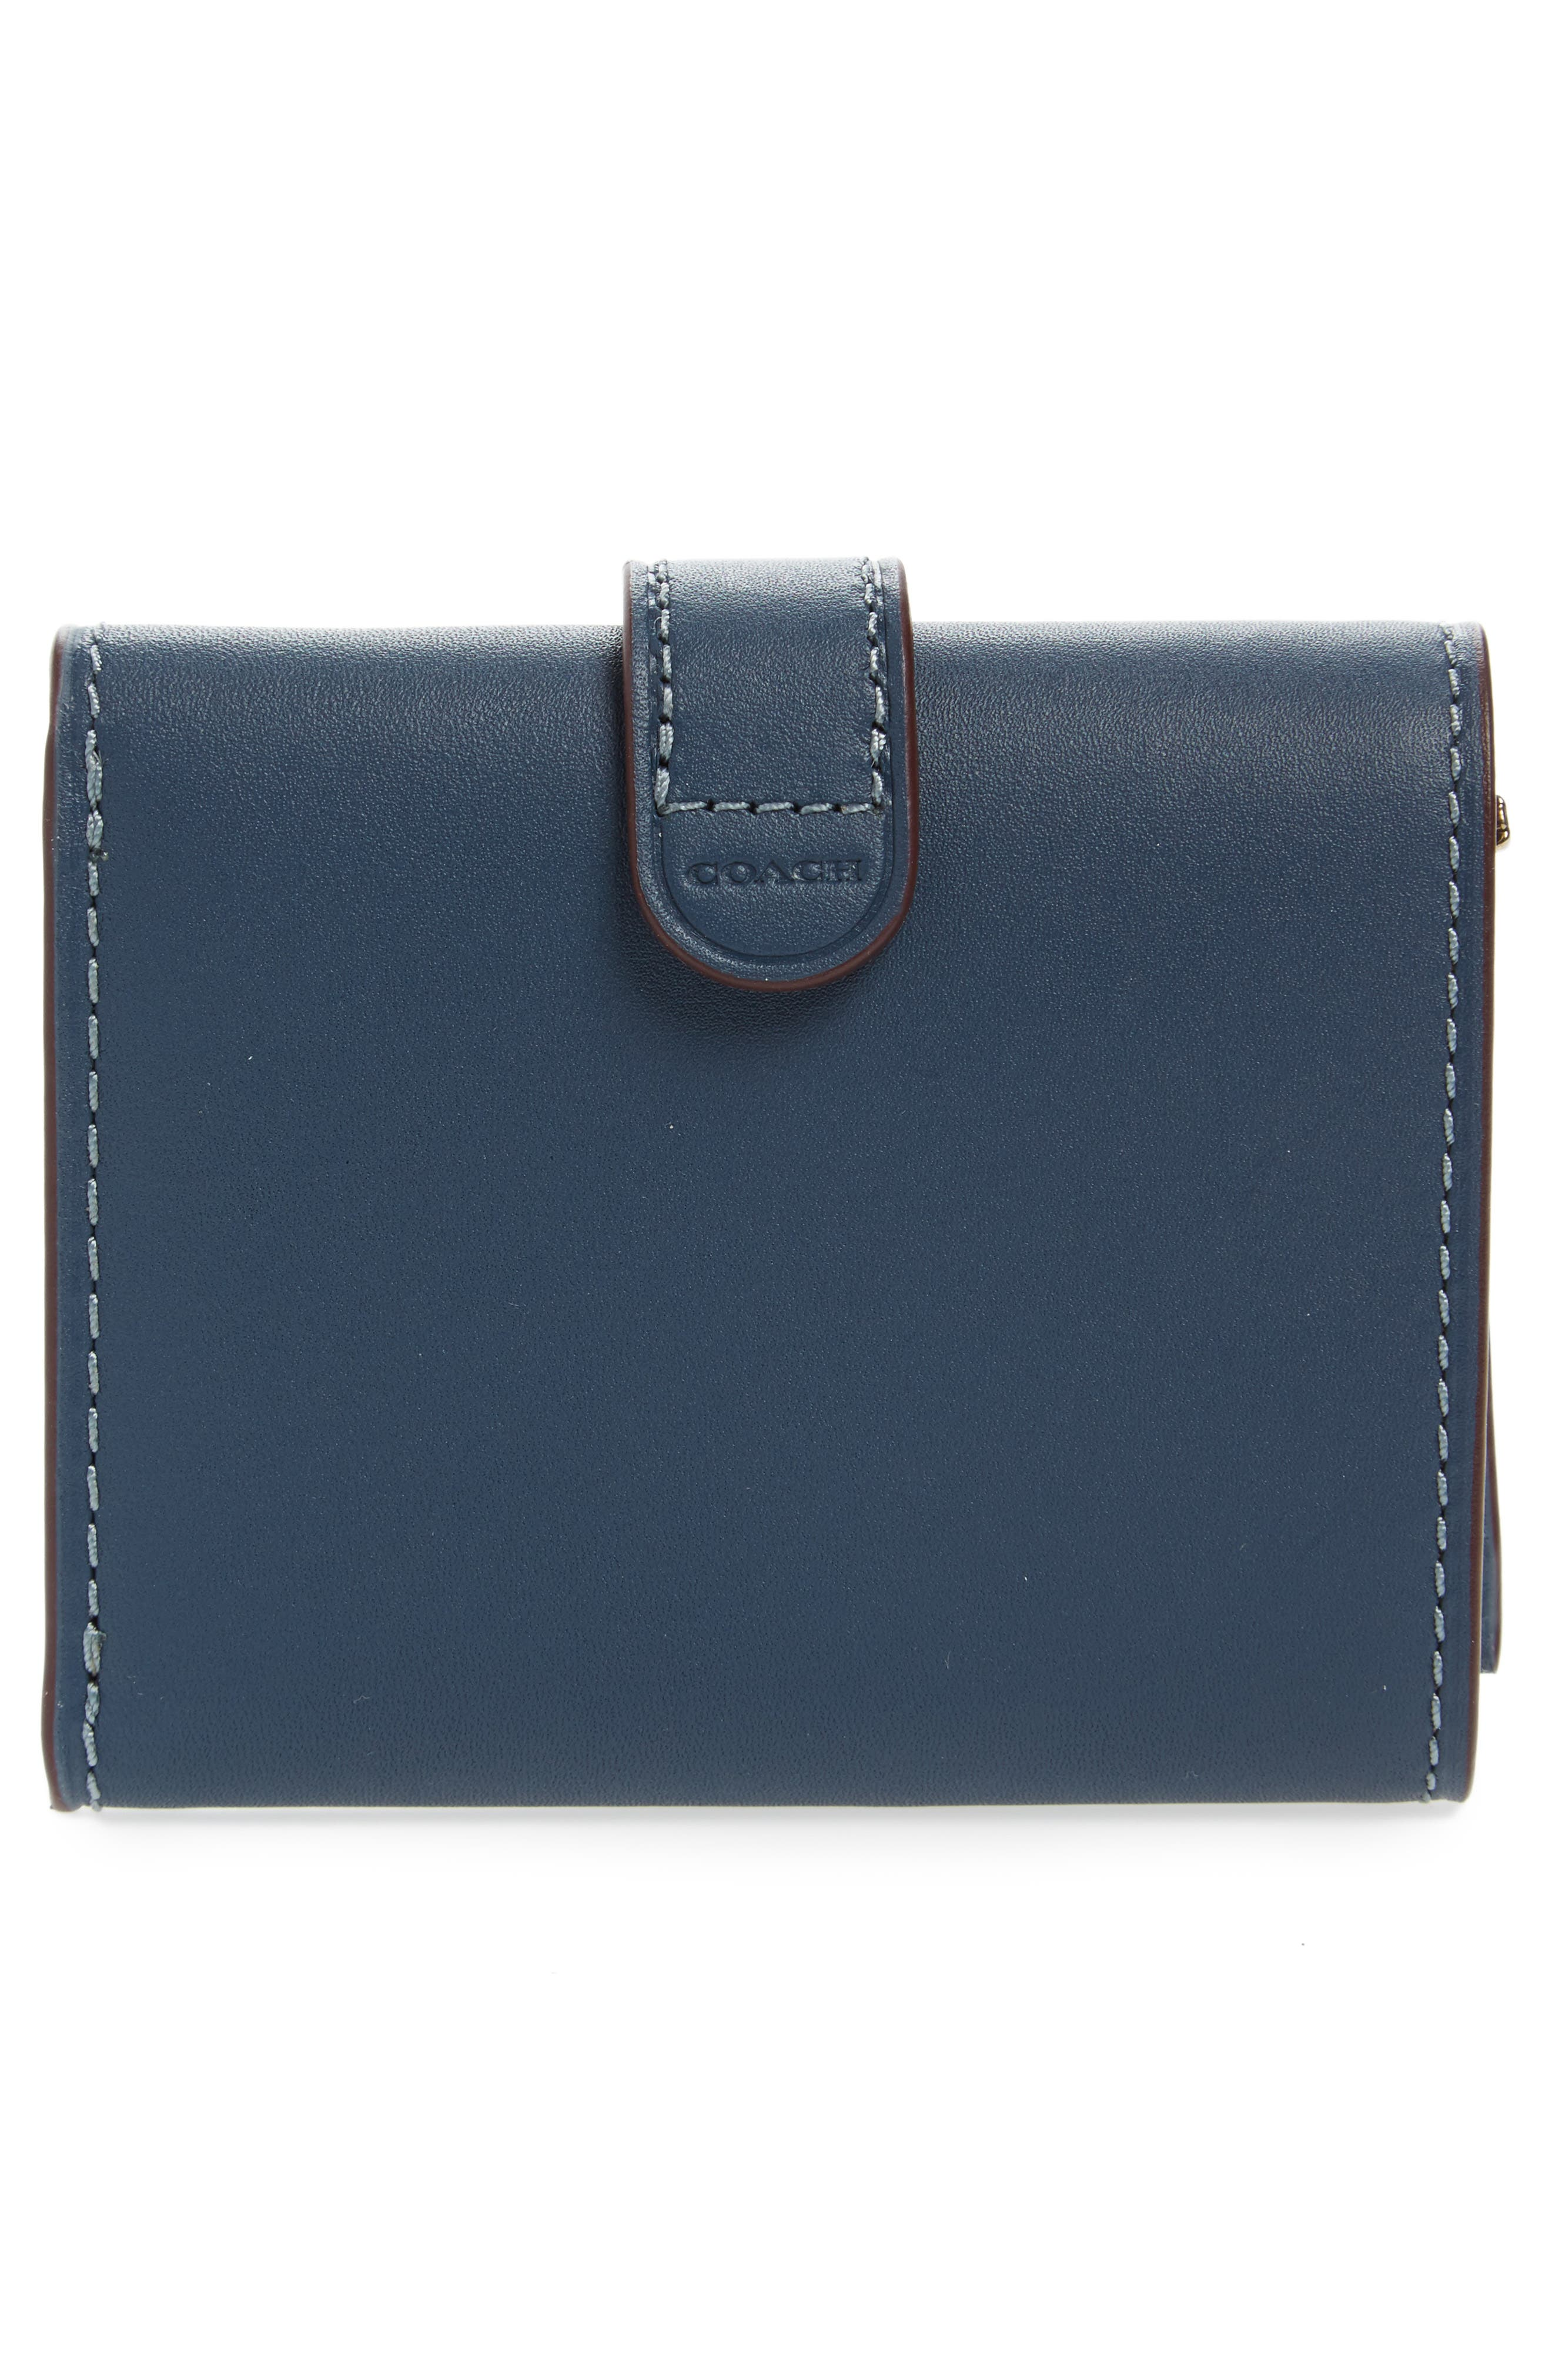 Small Leather Trifold Wallet,                             Alternate thumbnail 4, color,                             400